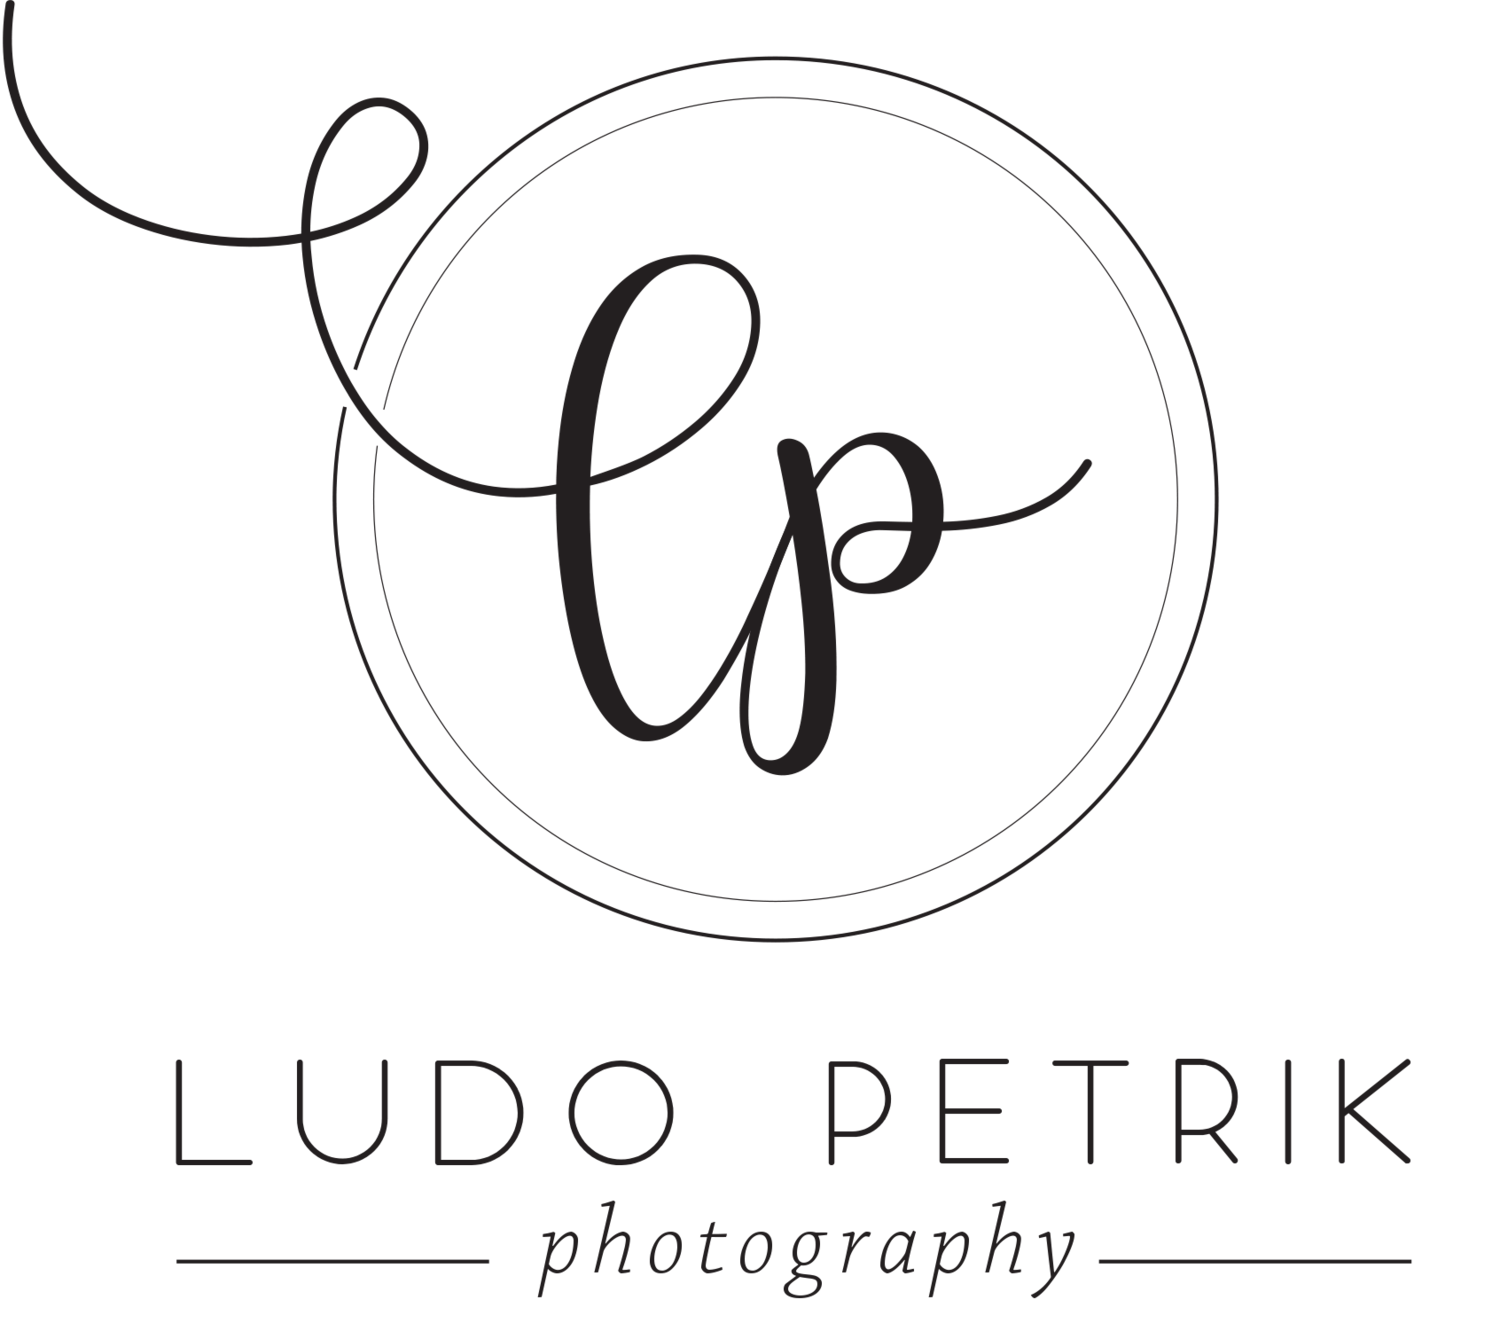 Ludo Petrik Wedding Photography